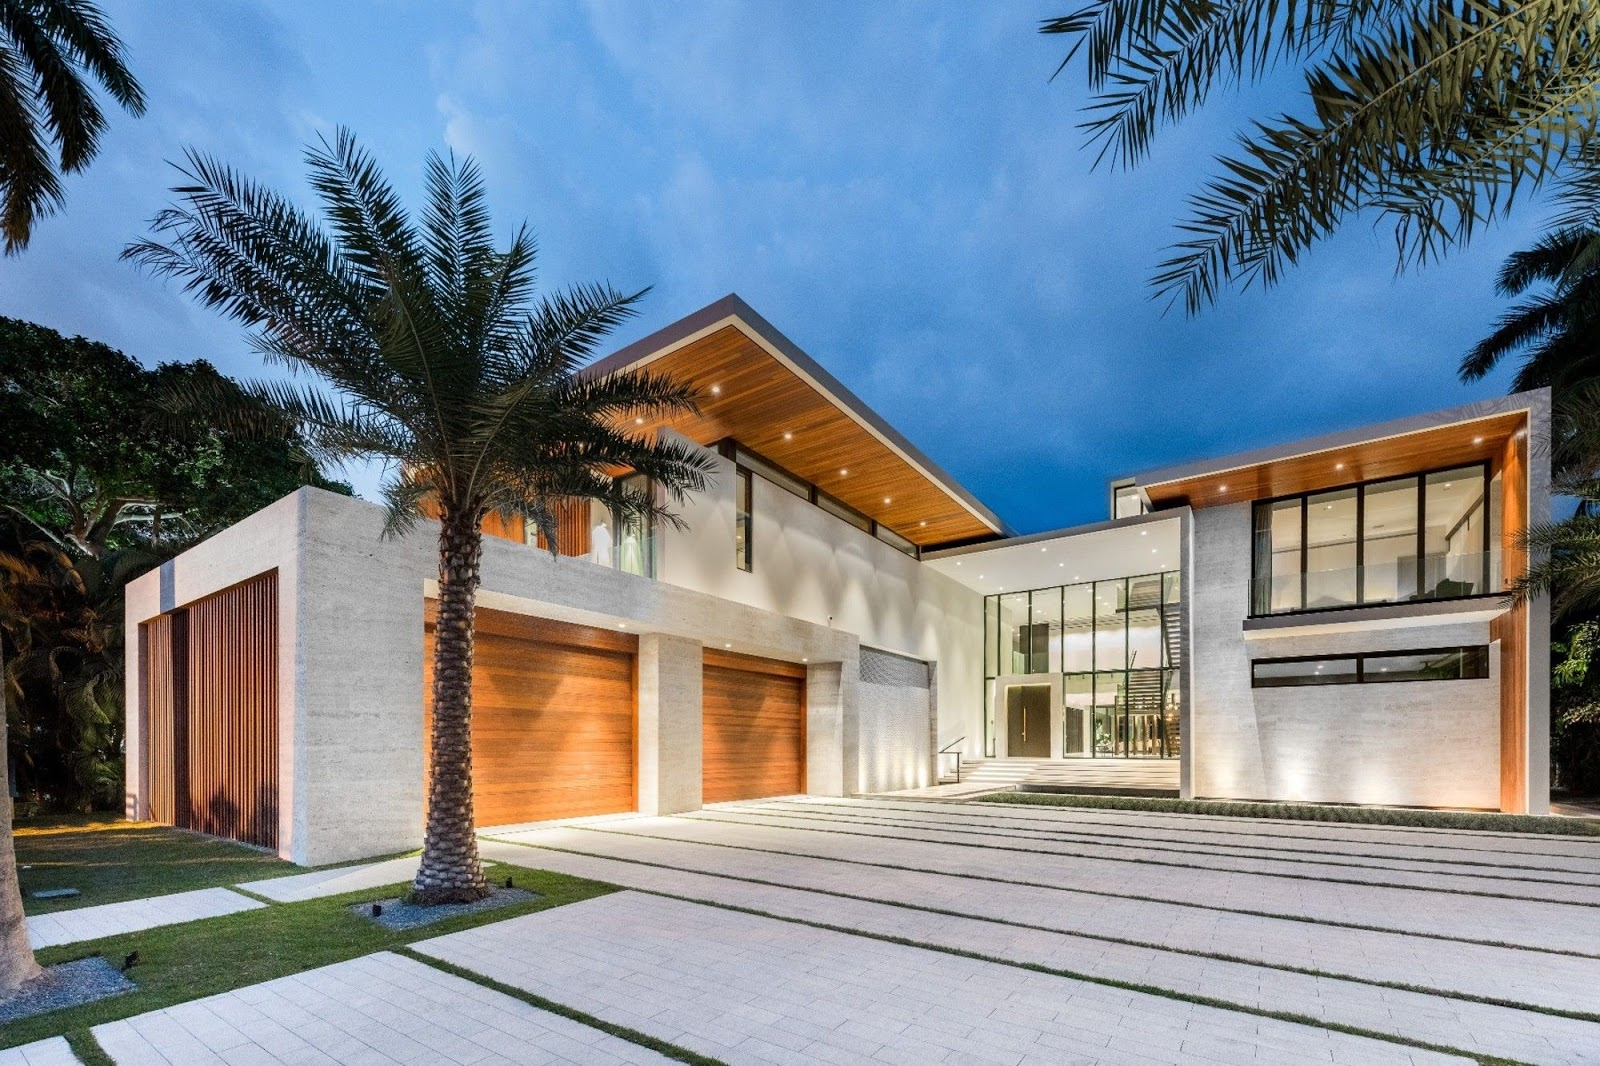 The mind for de ign 2018 for Big homes for sale in florida